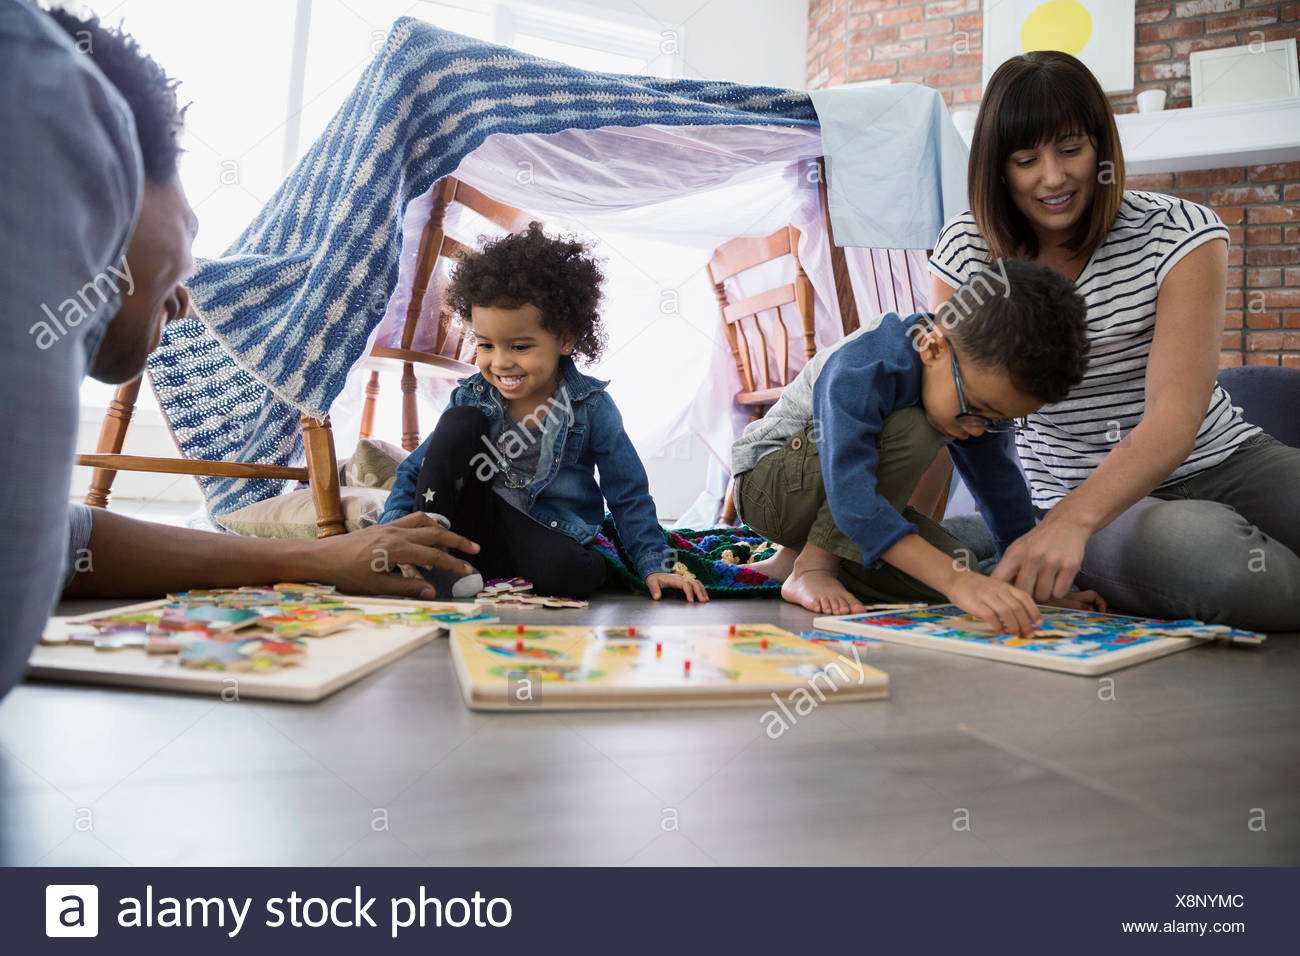 Family playing with jigsaw puzzles on floor - Stock Image